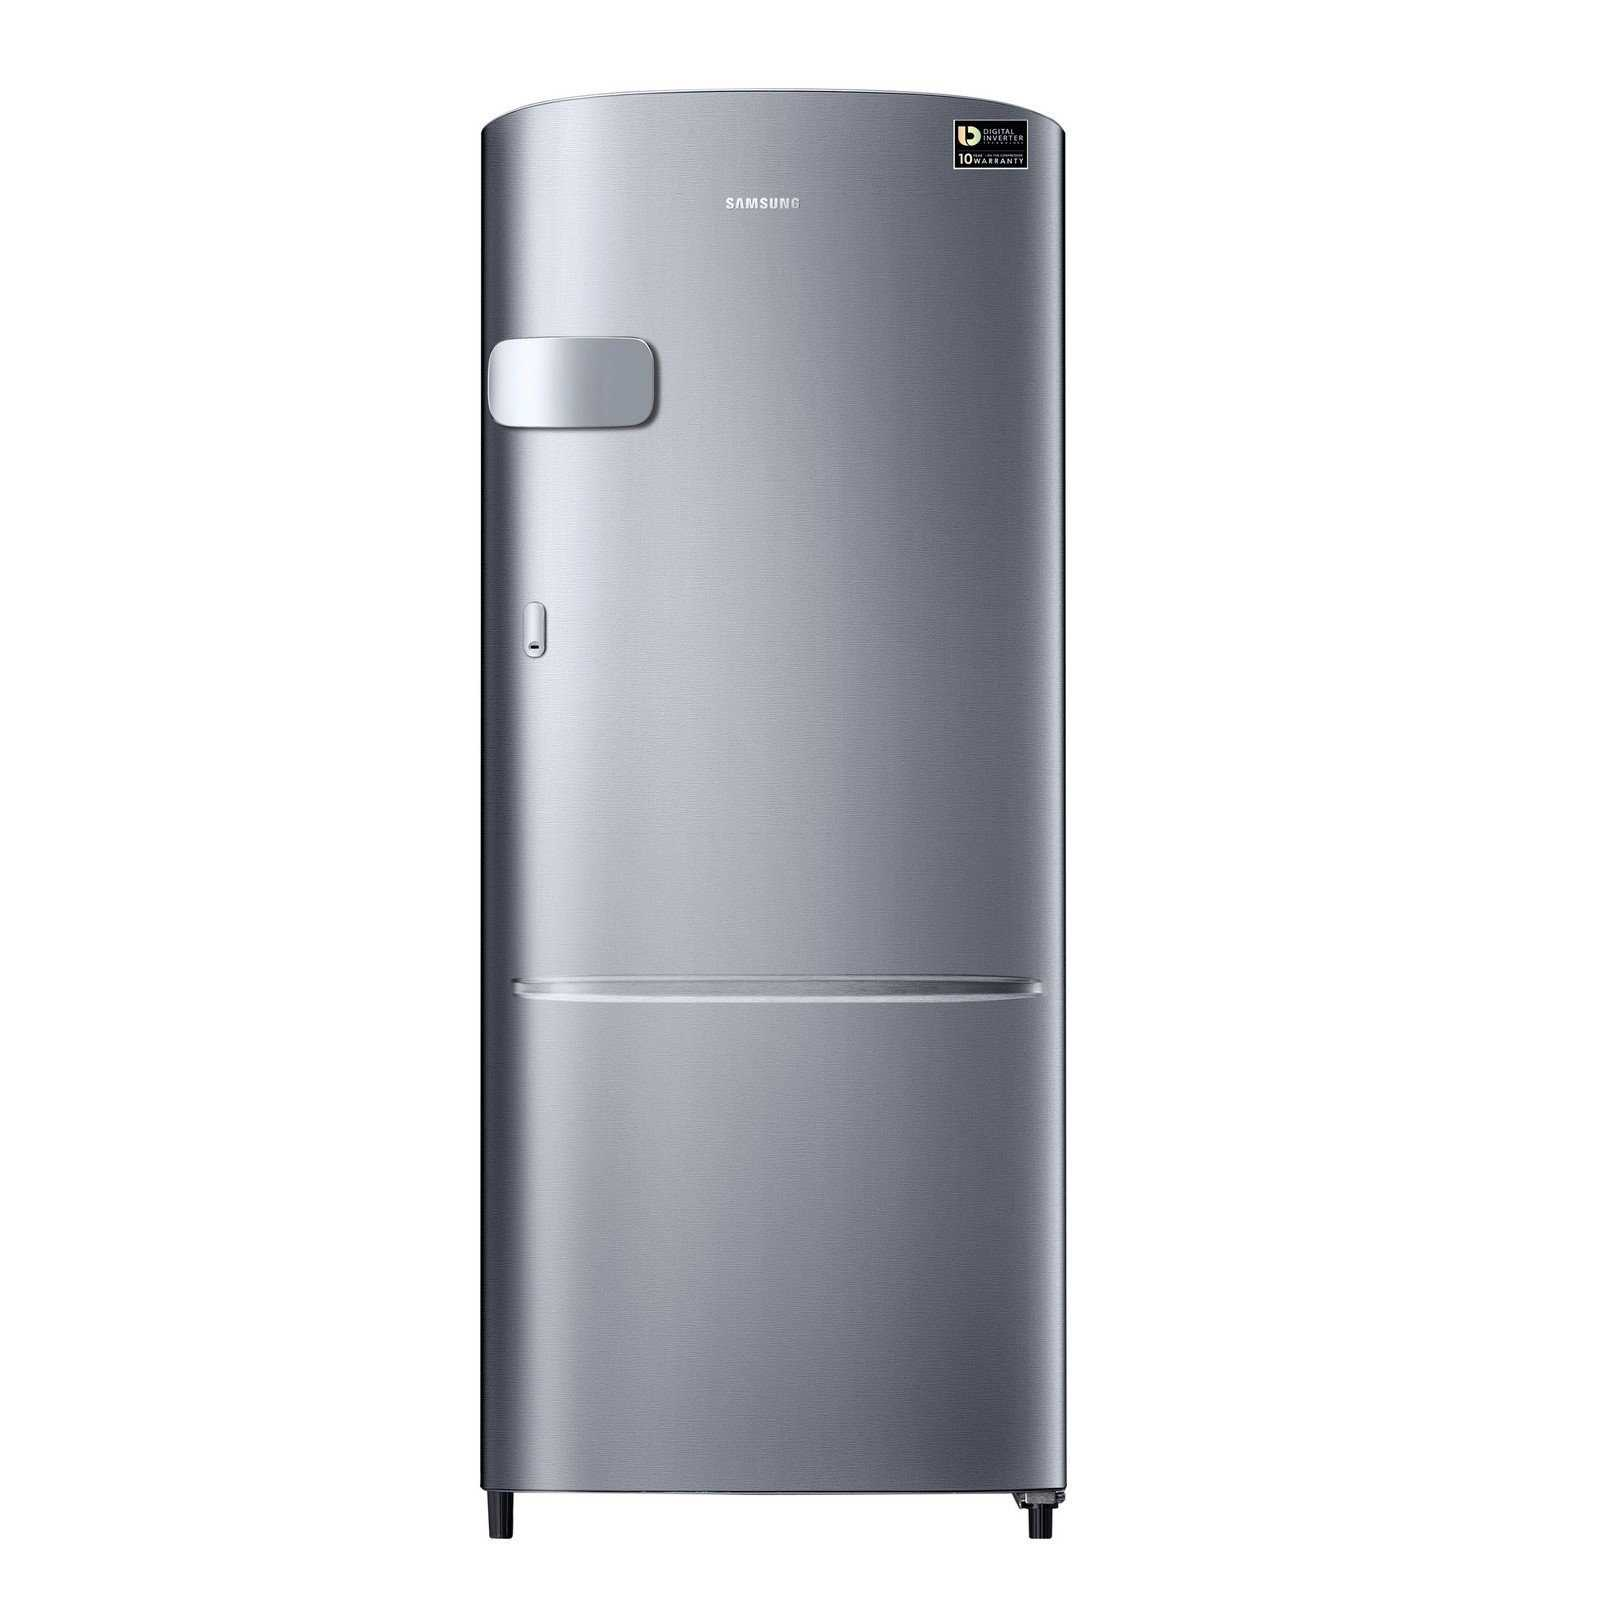 Samsung RR22N3Y2ZS8 HL 212 Litre Direct Cool Single Door Refrigerator